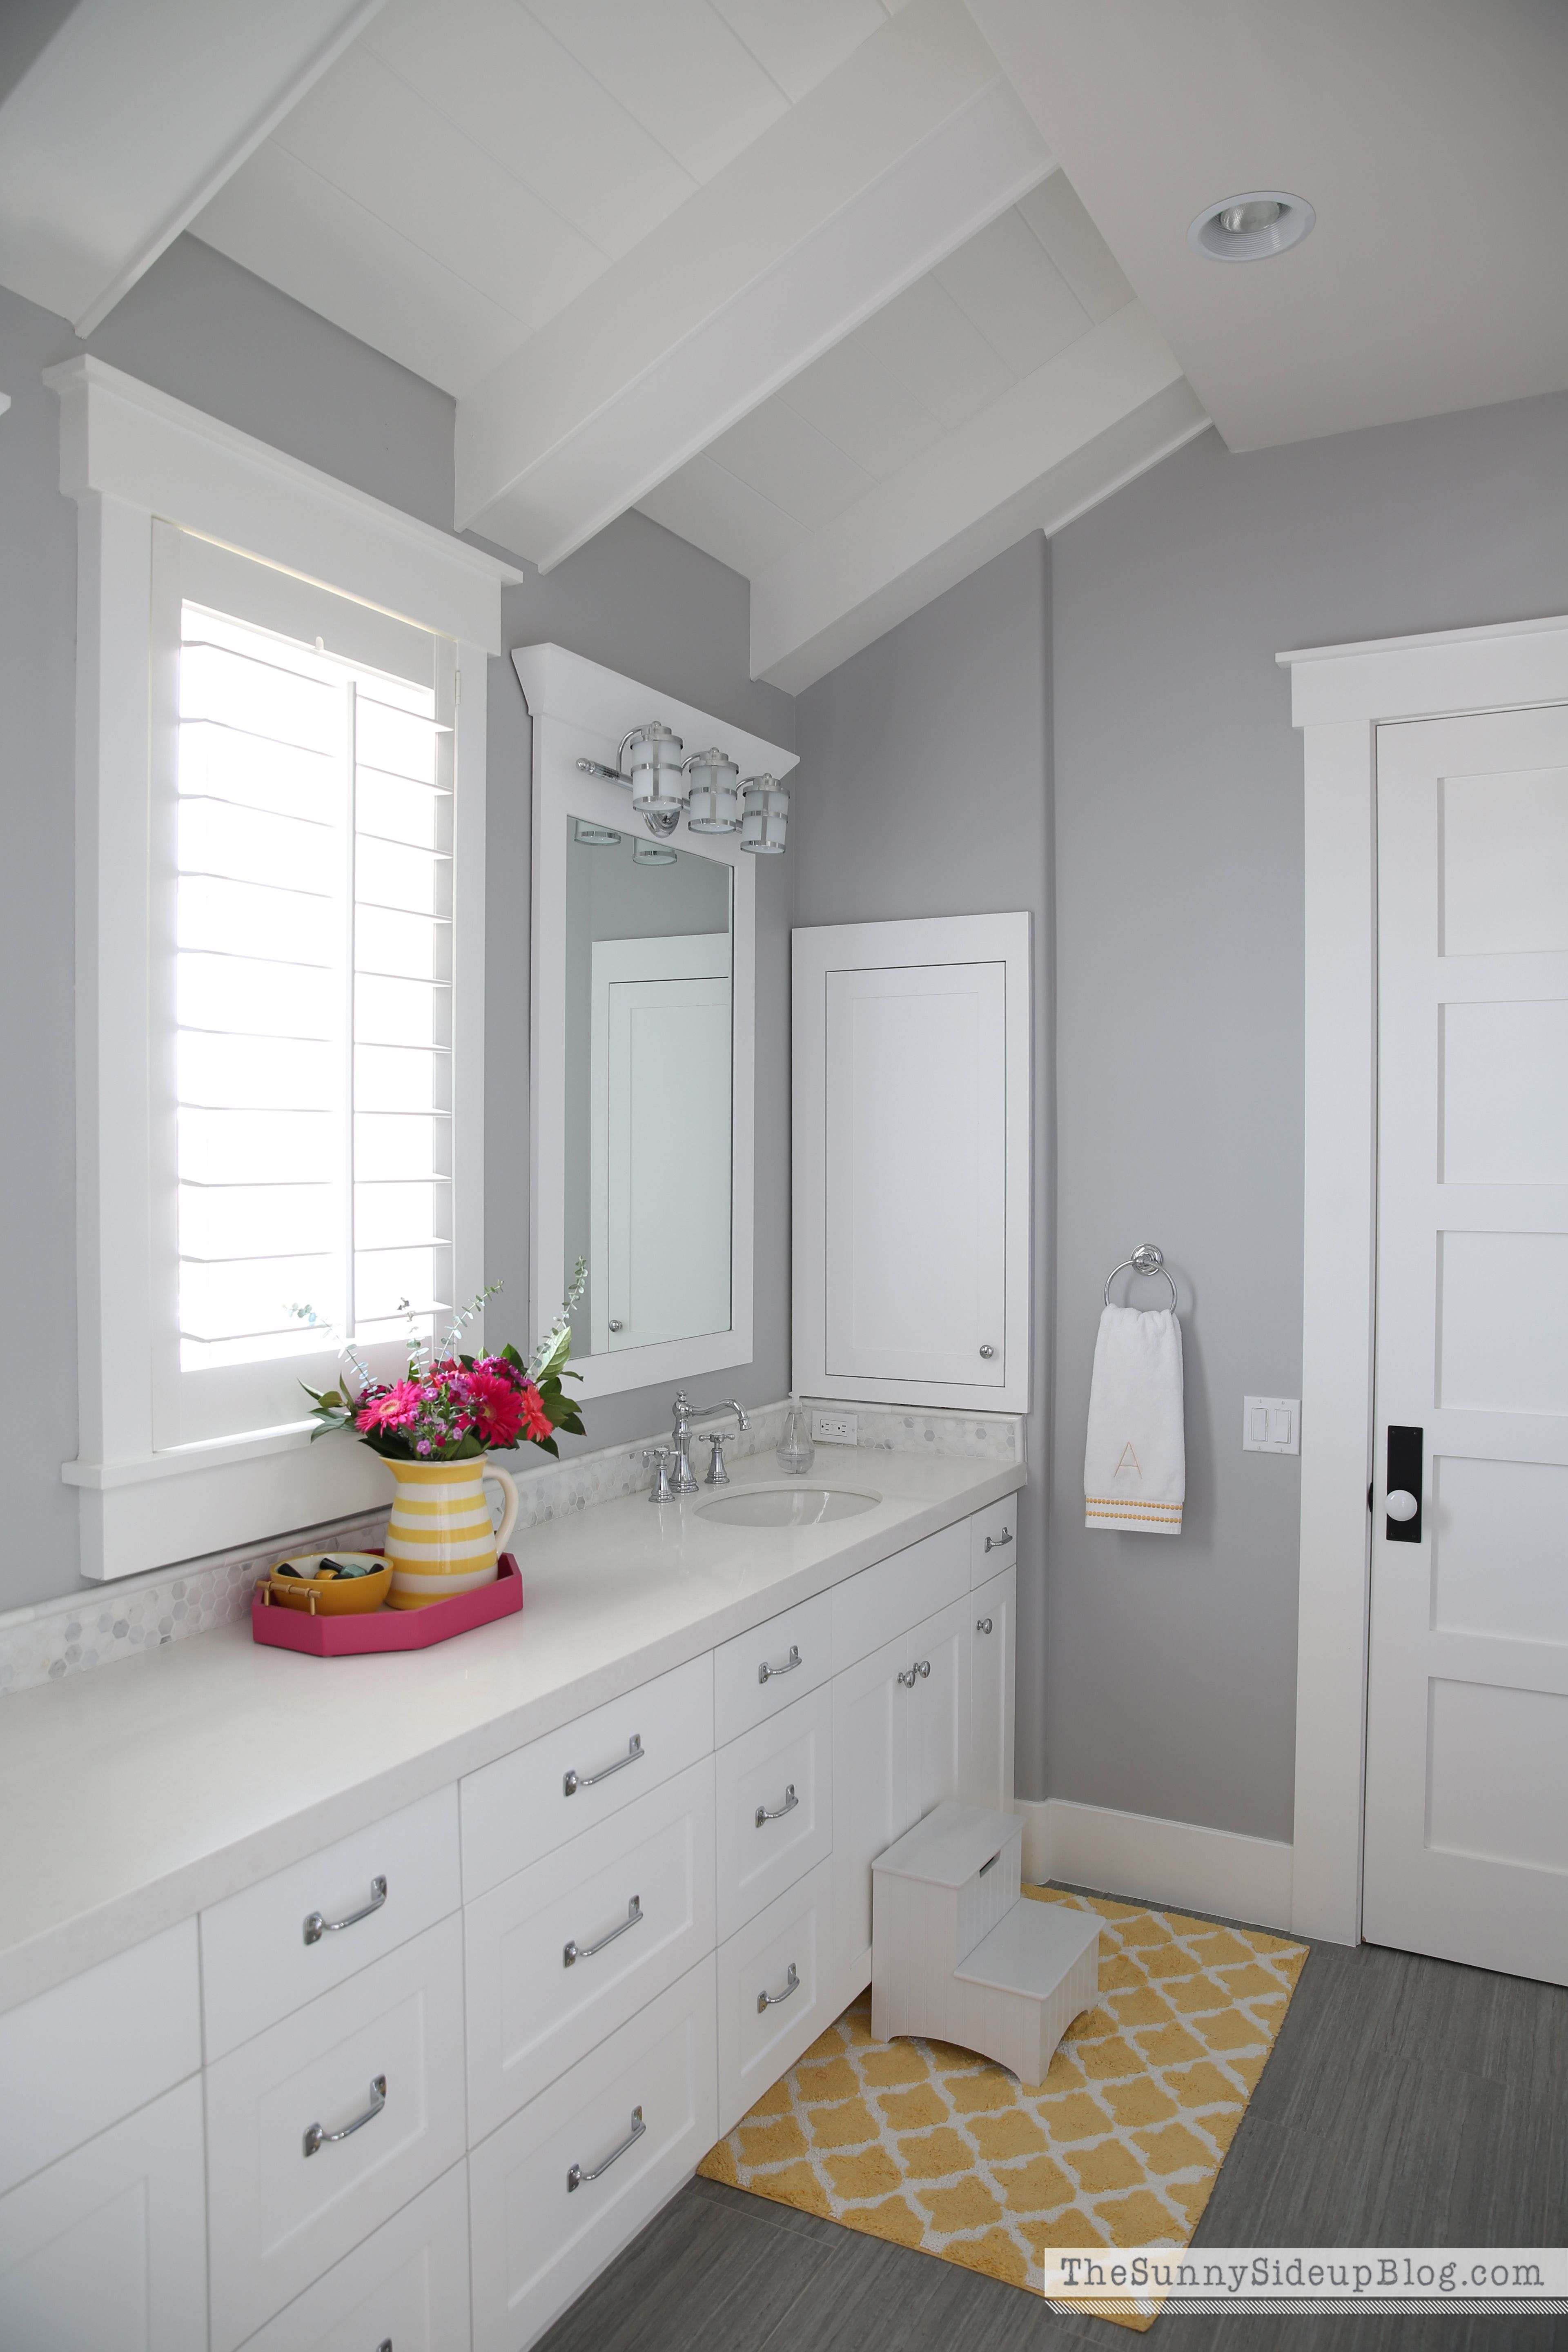 Girls Bathroom Decor The Sunny Side Up Blog Girl Bathroom Decor Bathroom Paint Colors Grey Bathroom Paint